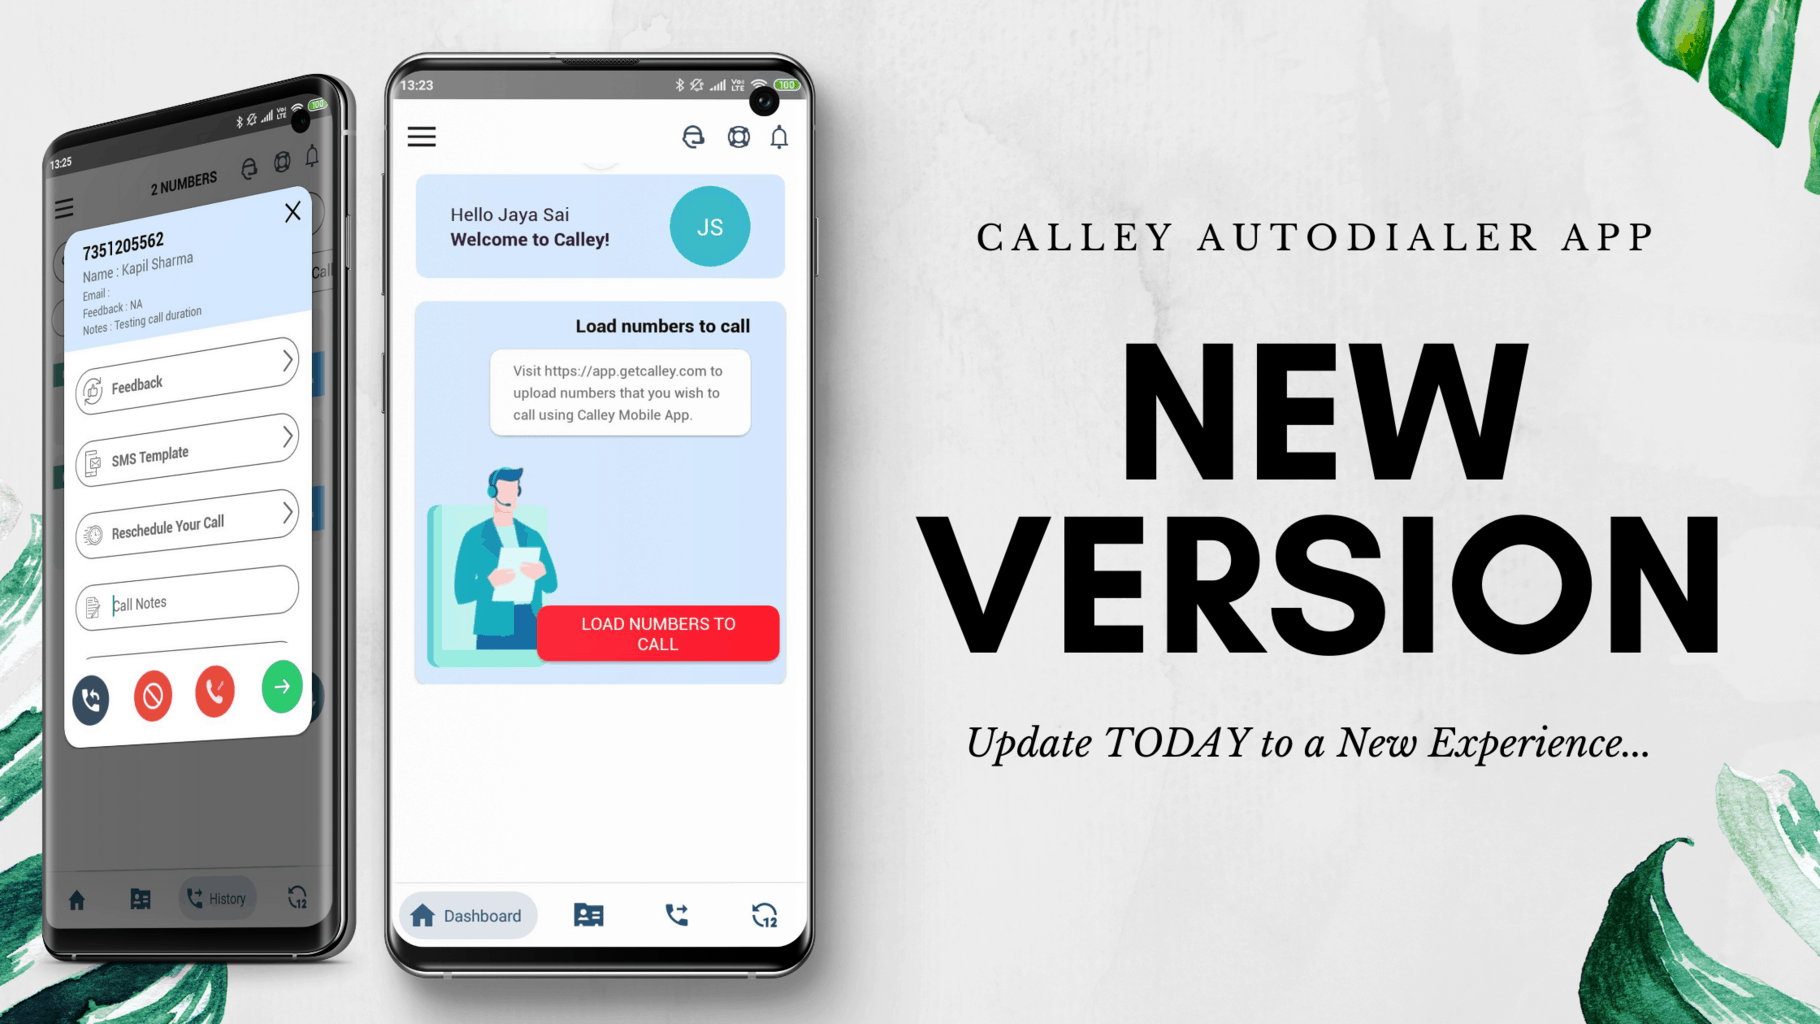 Launching New Version of Calley